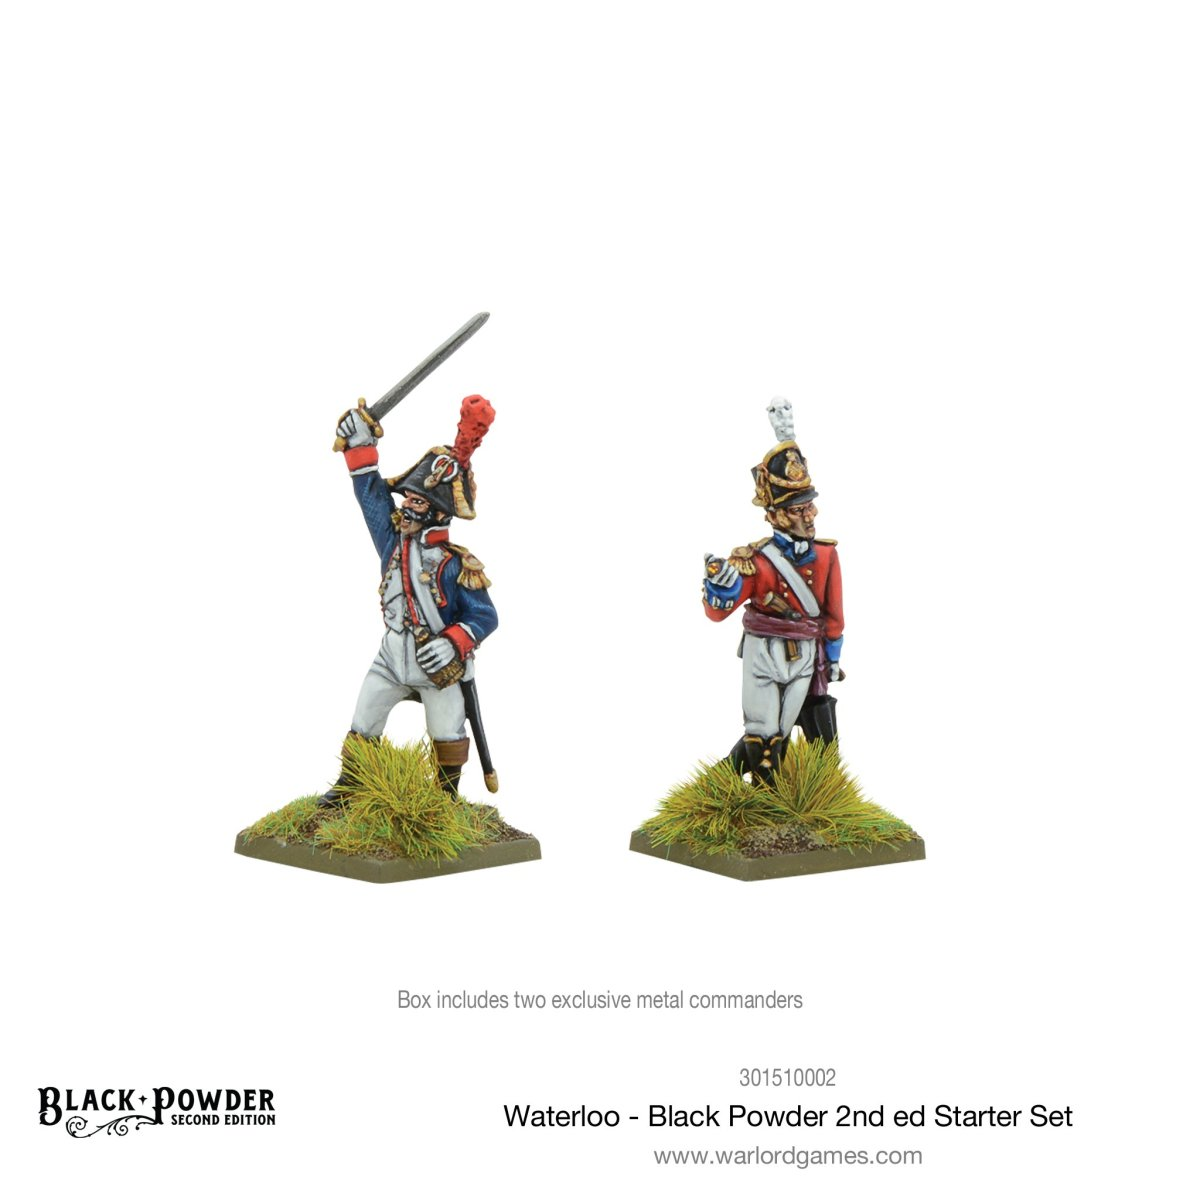 Les deux commandants du Starter Set Waterloo